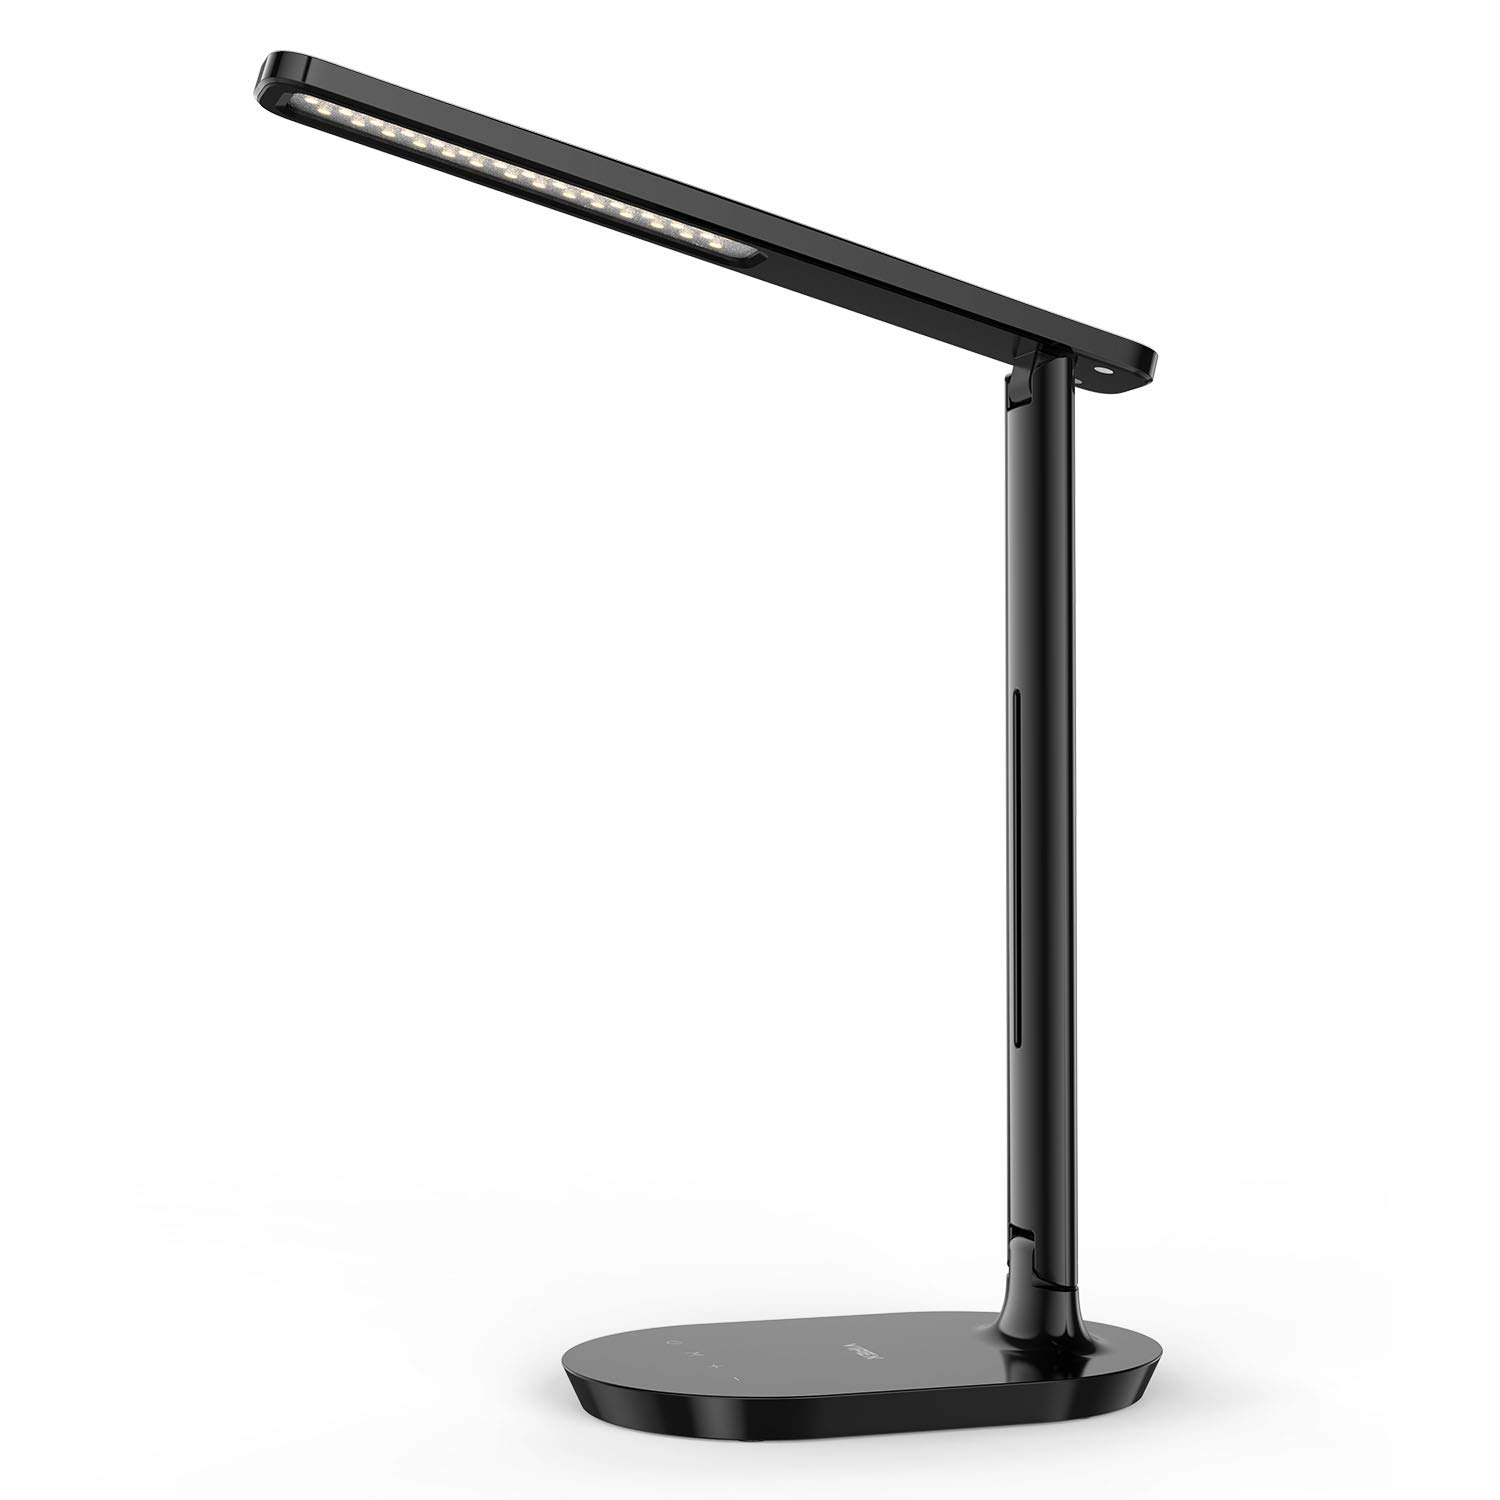 LED Desk Lamp - Dimmable Table Lamp with Eye-Caring Ideal for Reading, Studying, Working, Foldable Office Task Light, 3 Color Modes with 5 Brightness Levels, Touch Control, Memory Function, Black